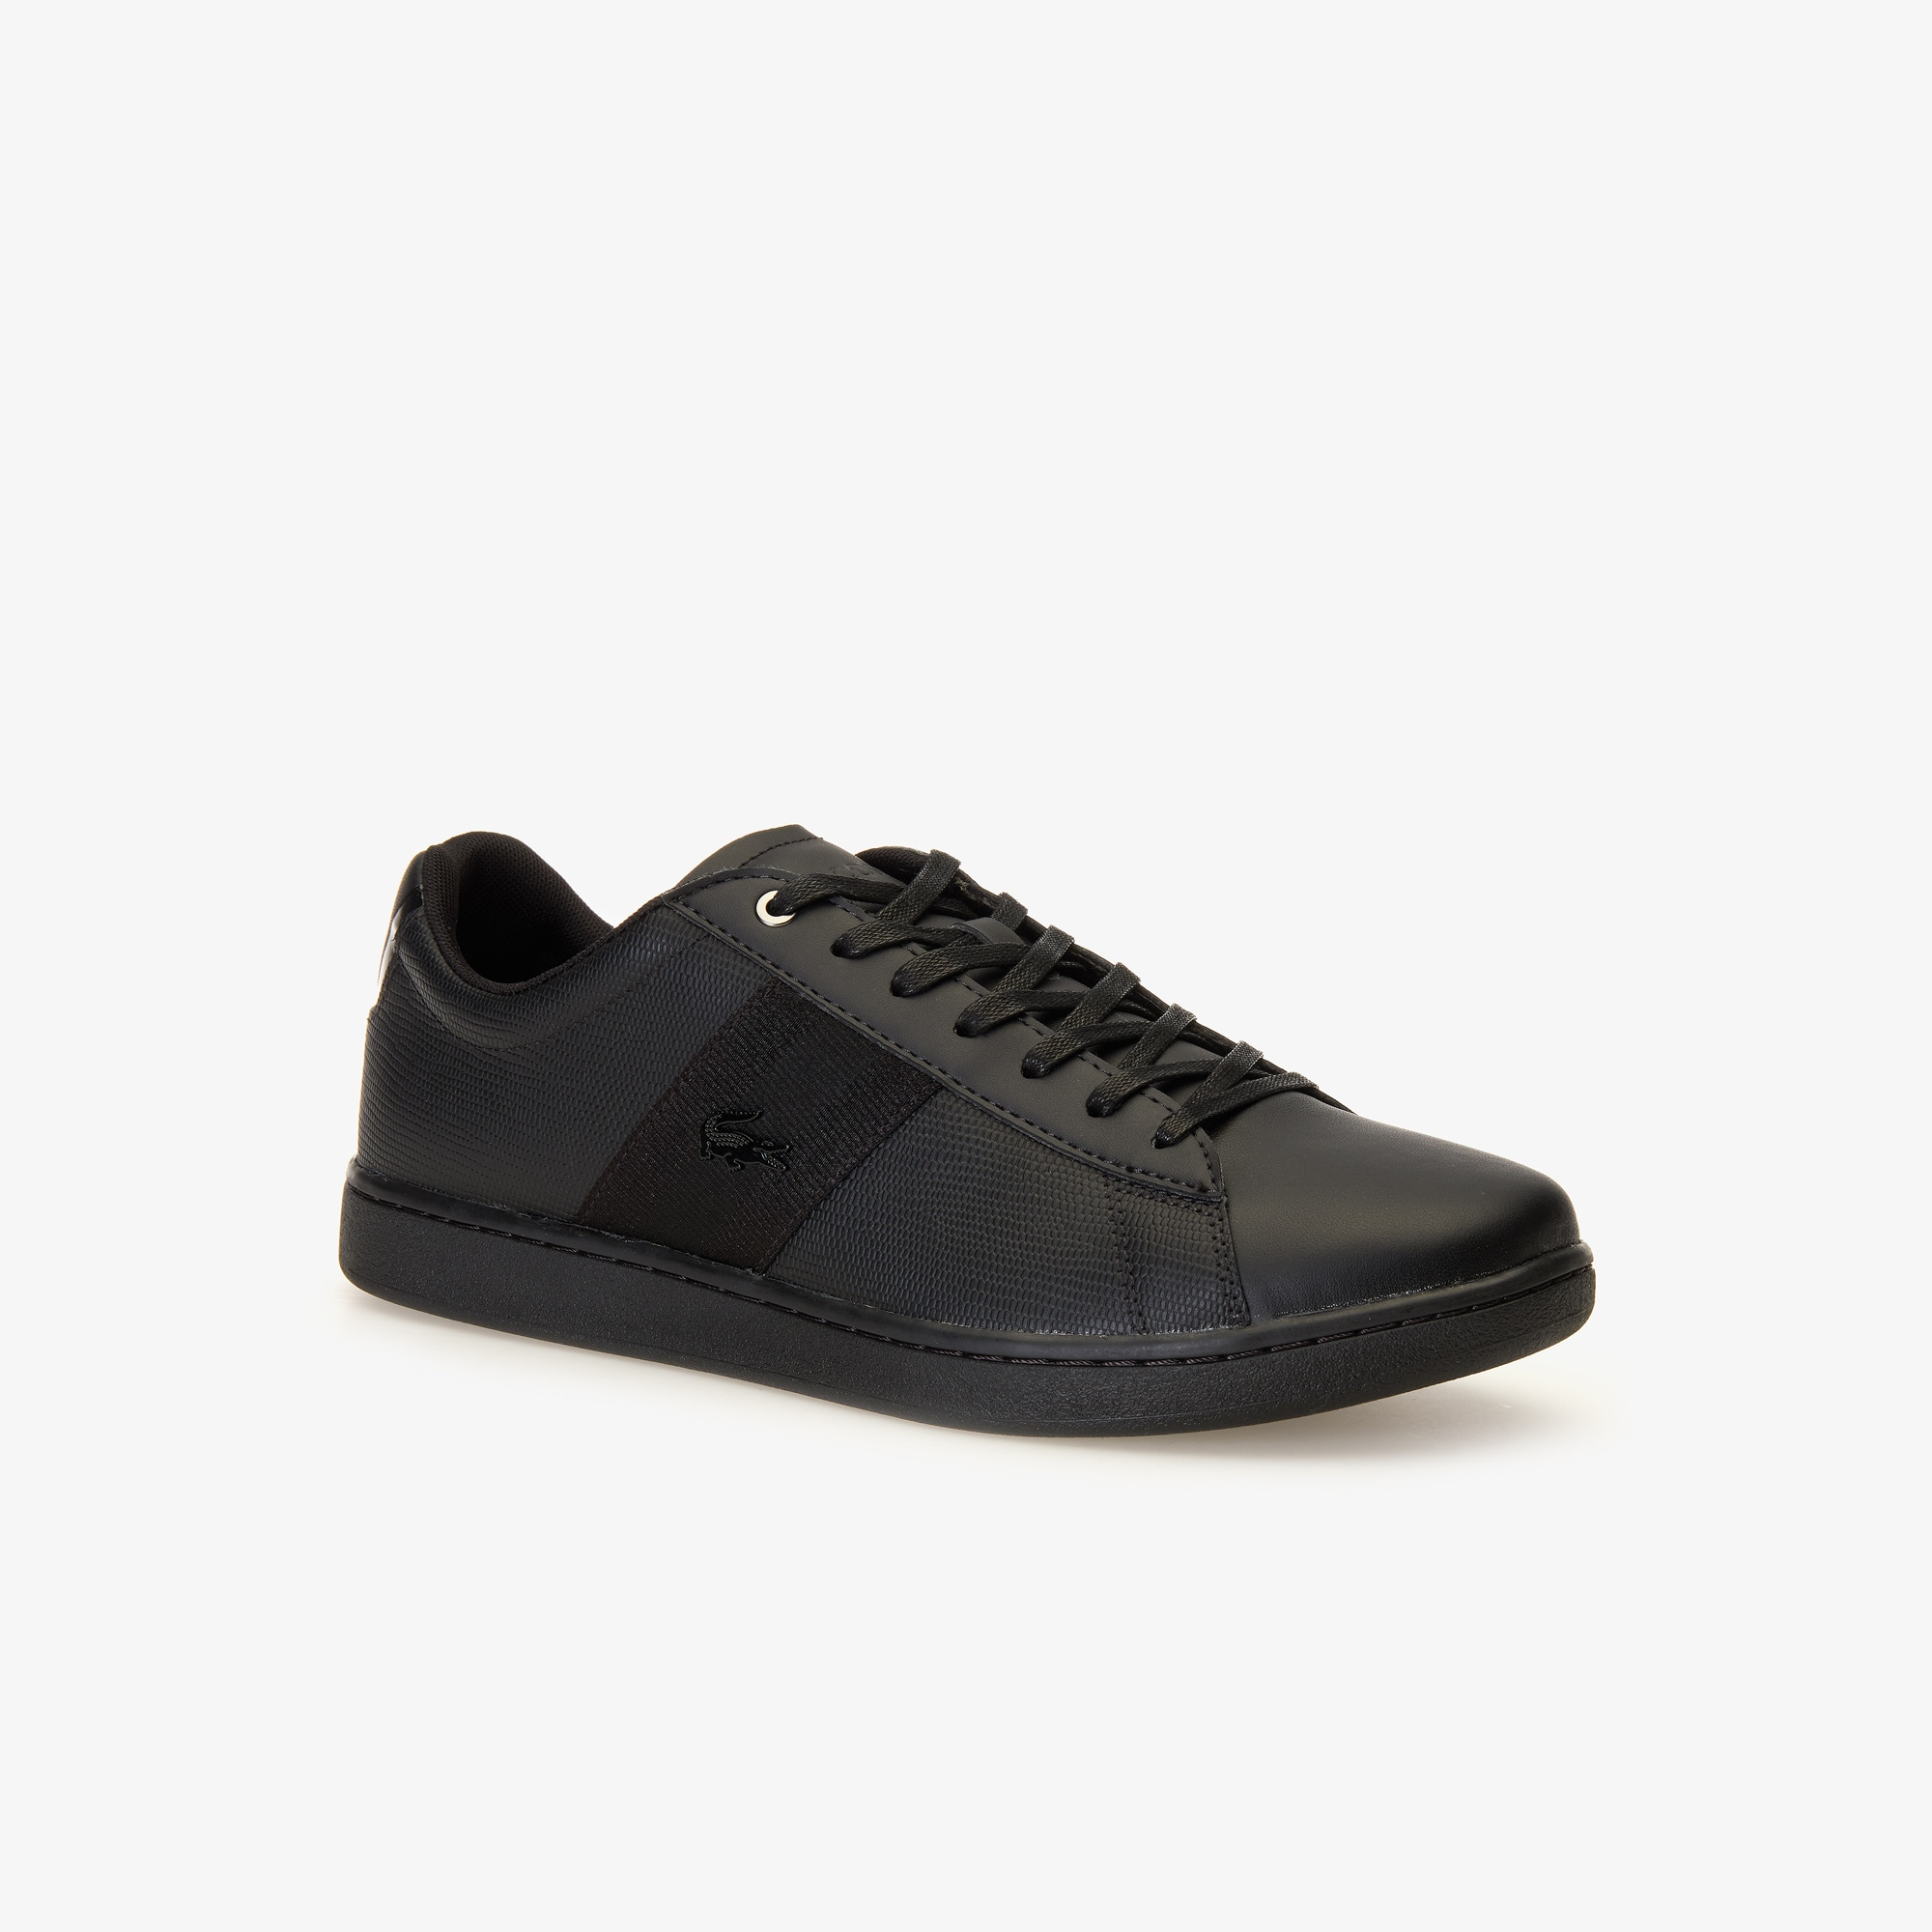 Chaussures homme   Collection Homme   LACOSTE 39122d5717c0